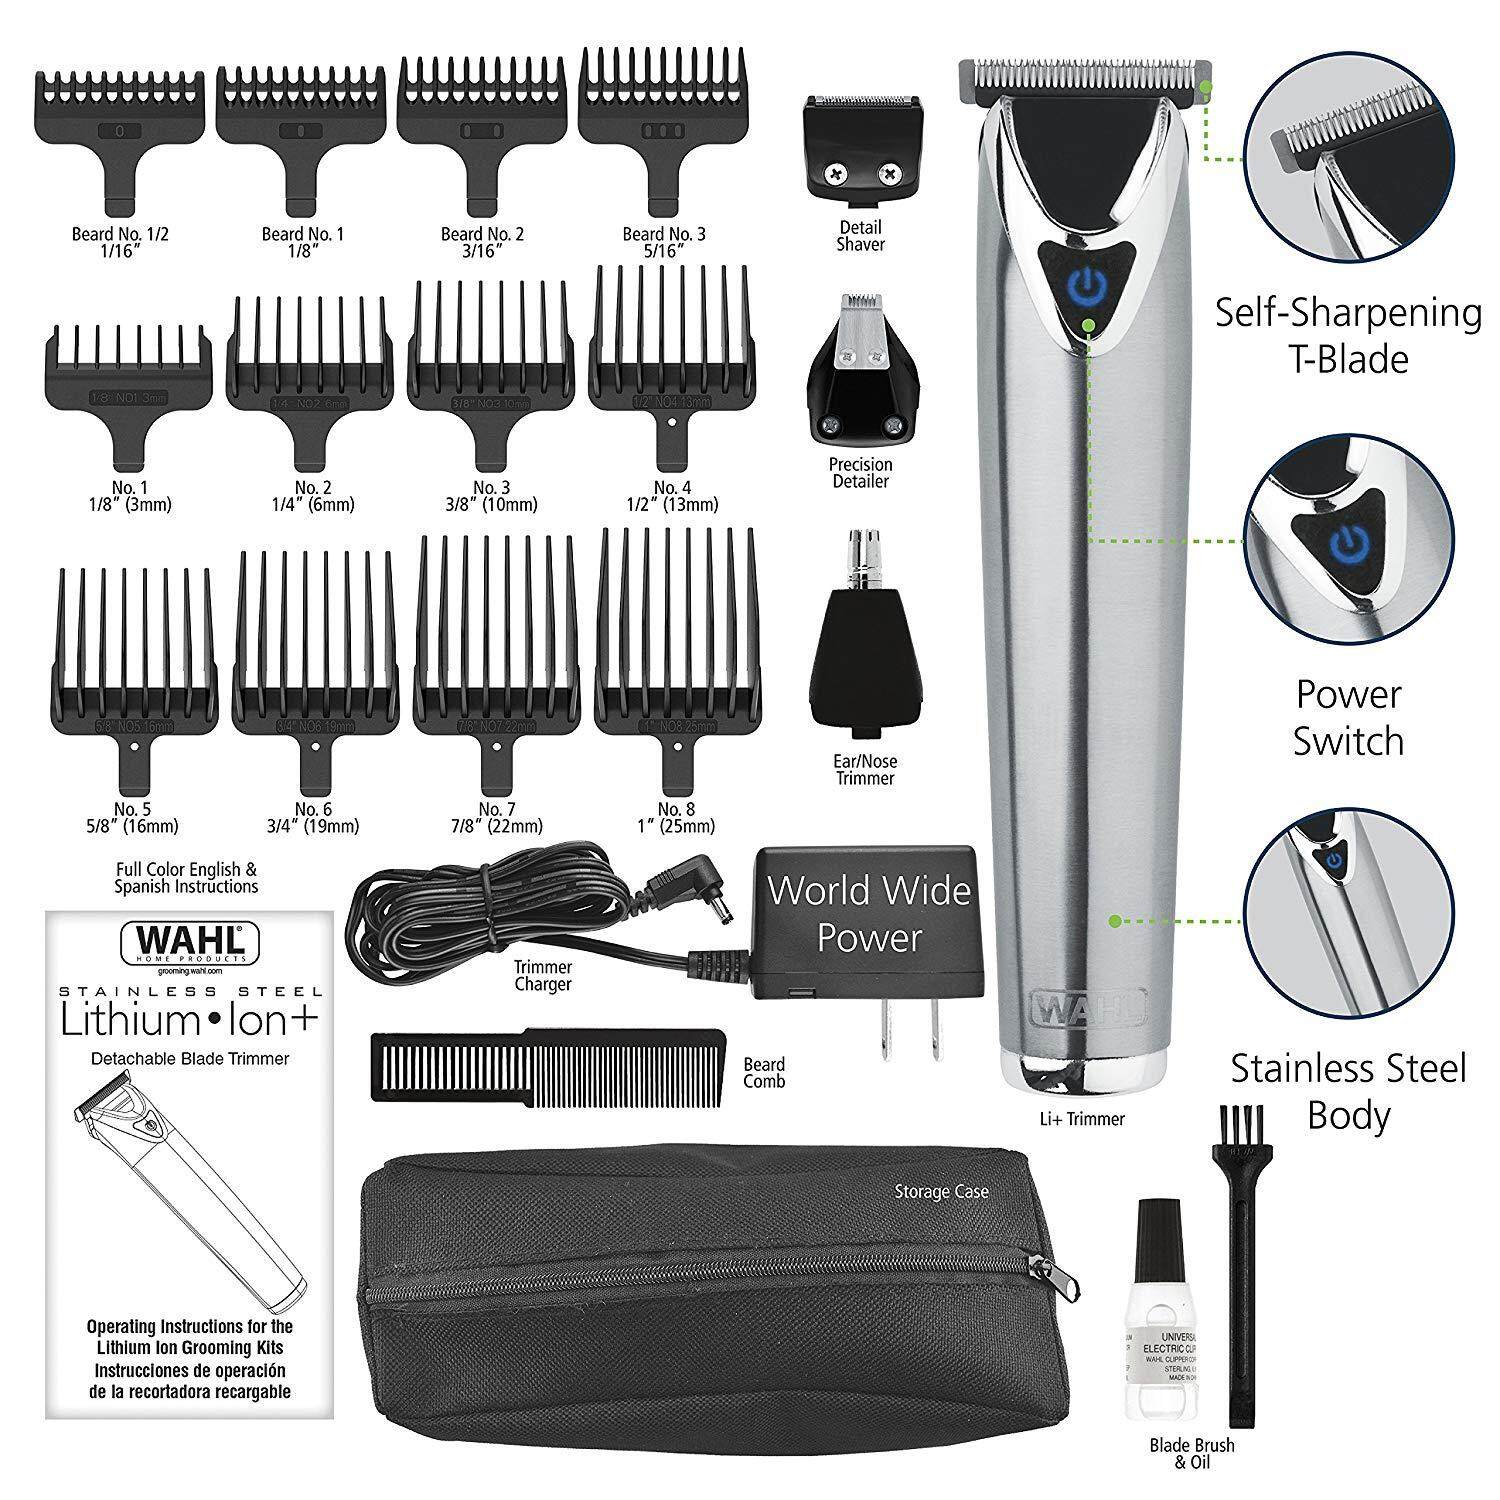 Wahl Clipper Stainless Steel Lithium Ion Plus Beard Trimmers for Men, Hair Clippers and Shavers